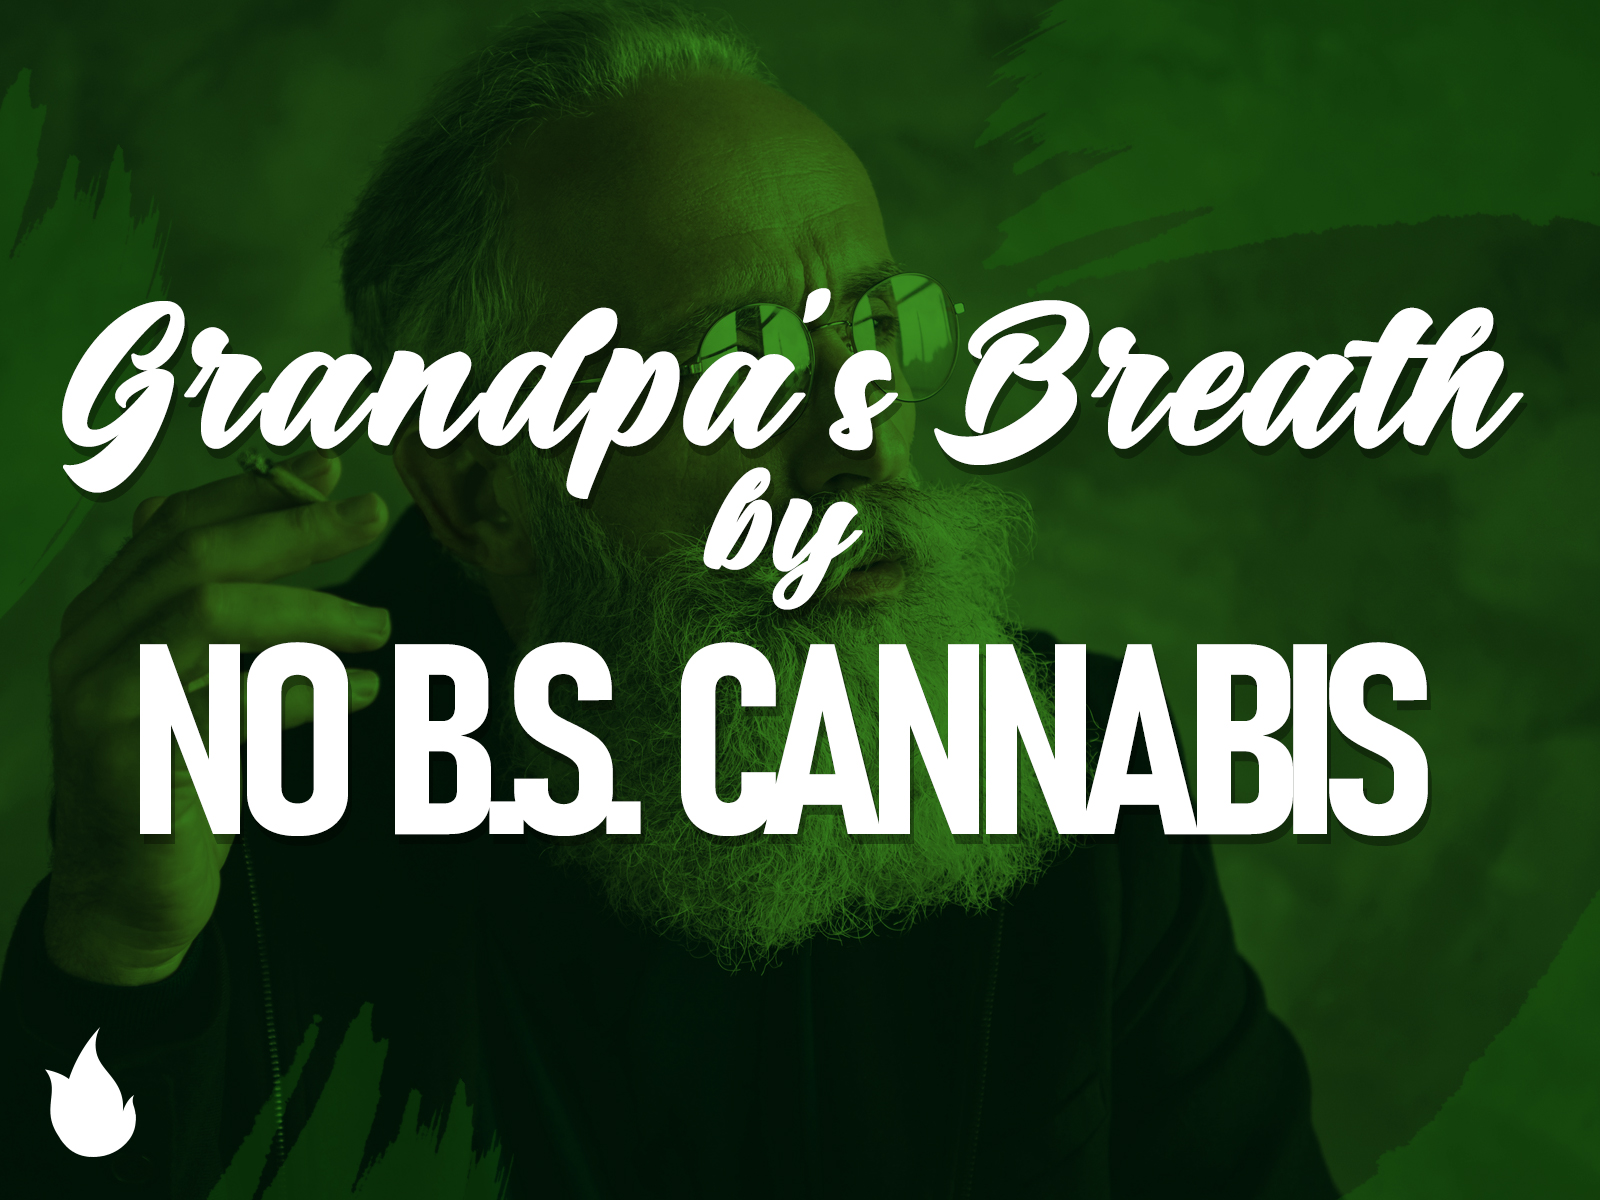 Grandpa's Breath Cannabis